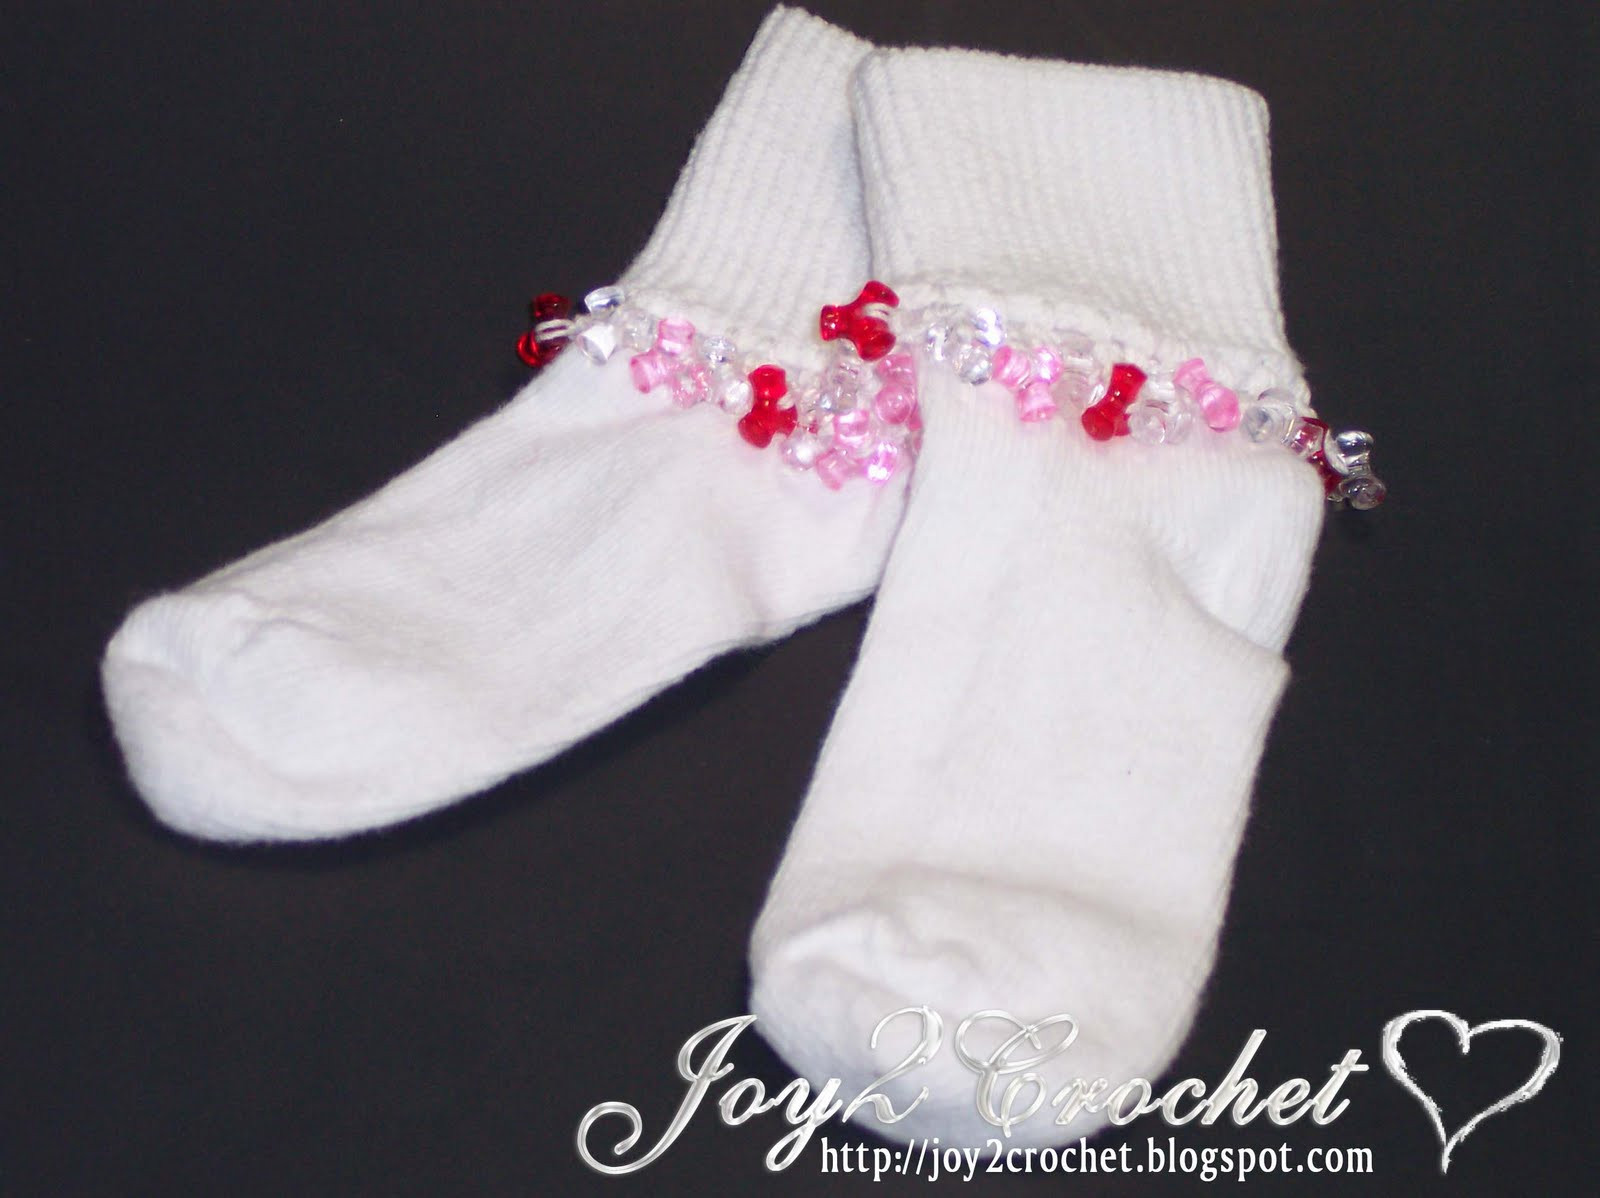 Lovely Joy 2 Crochet Crocheted Tri Bead Baby socks Crochet Baby socks Of Marvelous 50 Images Crochet Baby socks